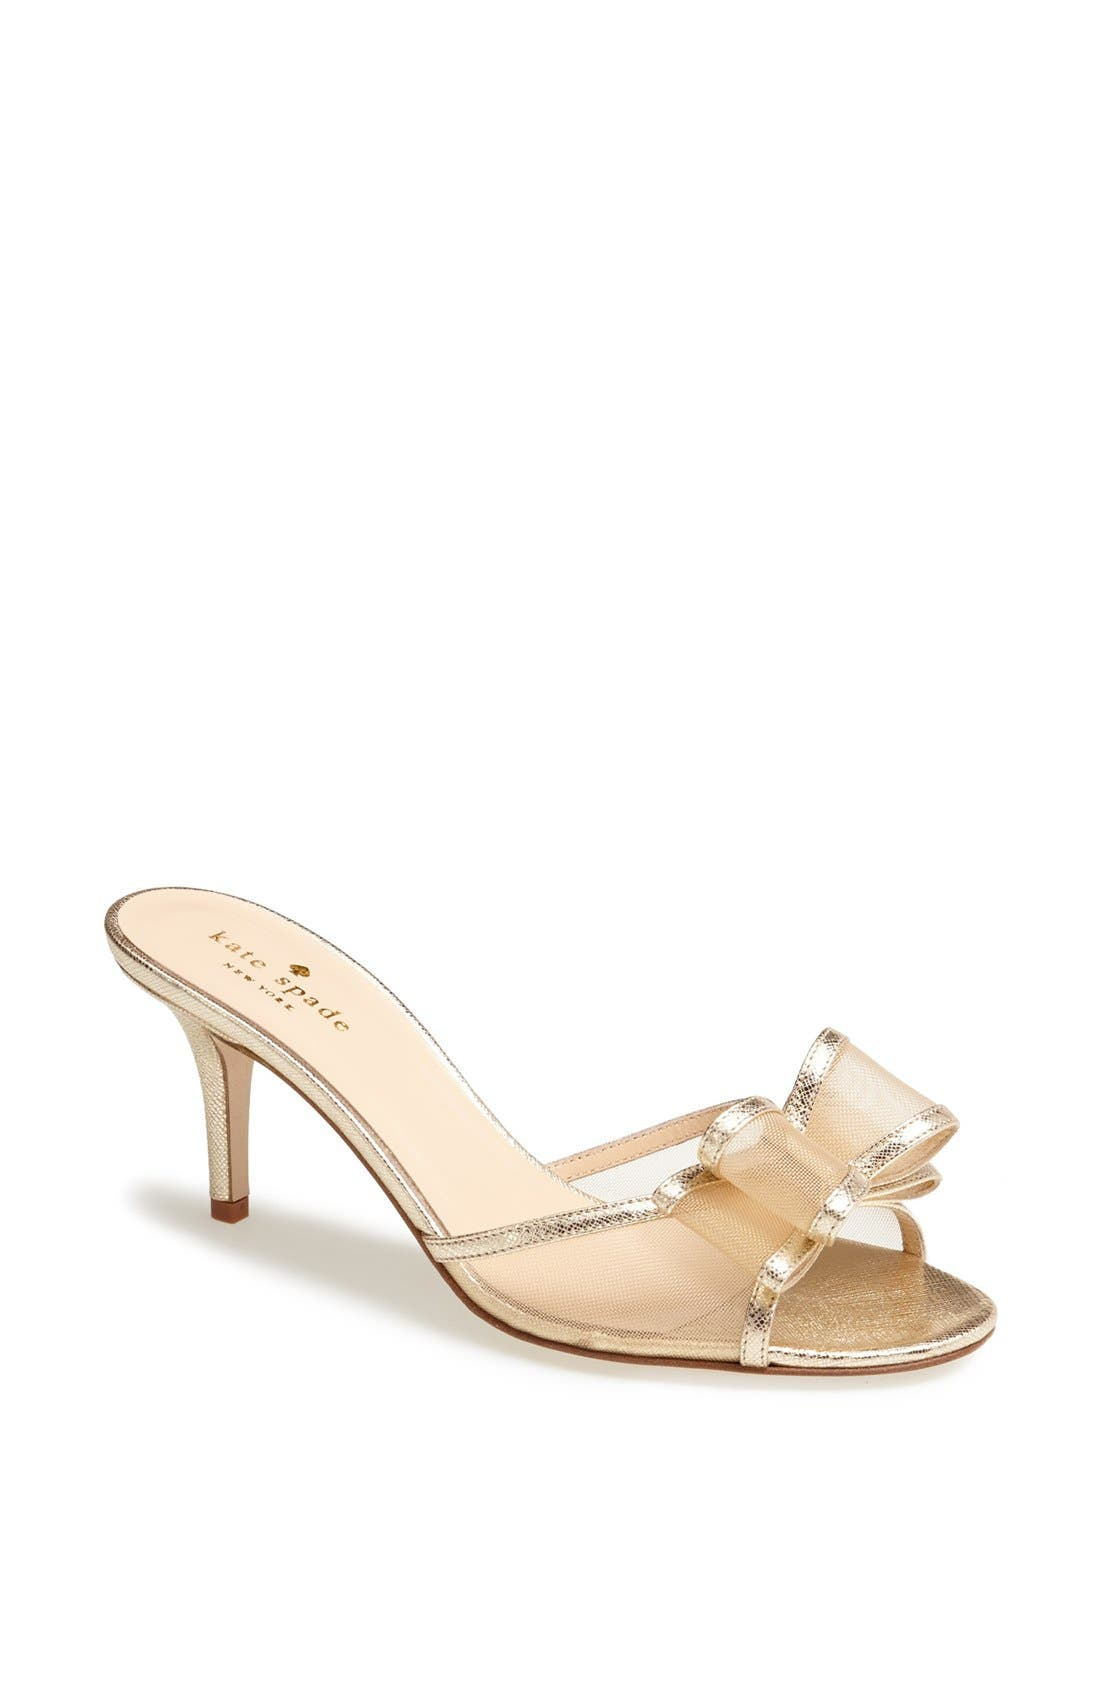 Main Image - kate spade new york 'michaela' sandal